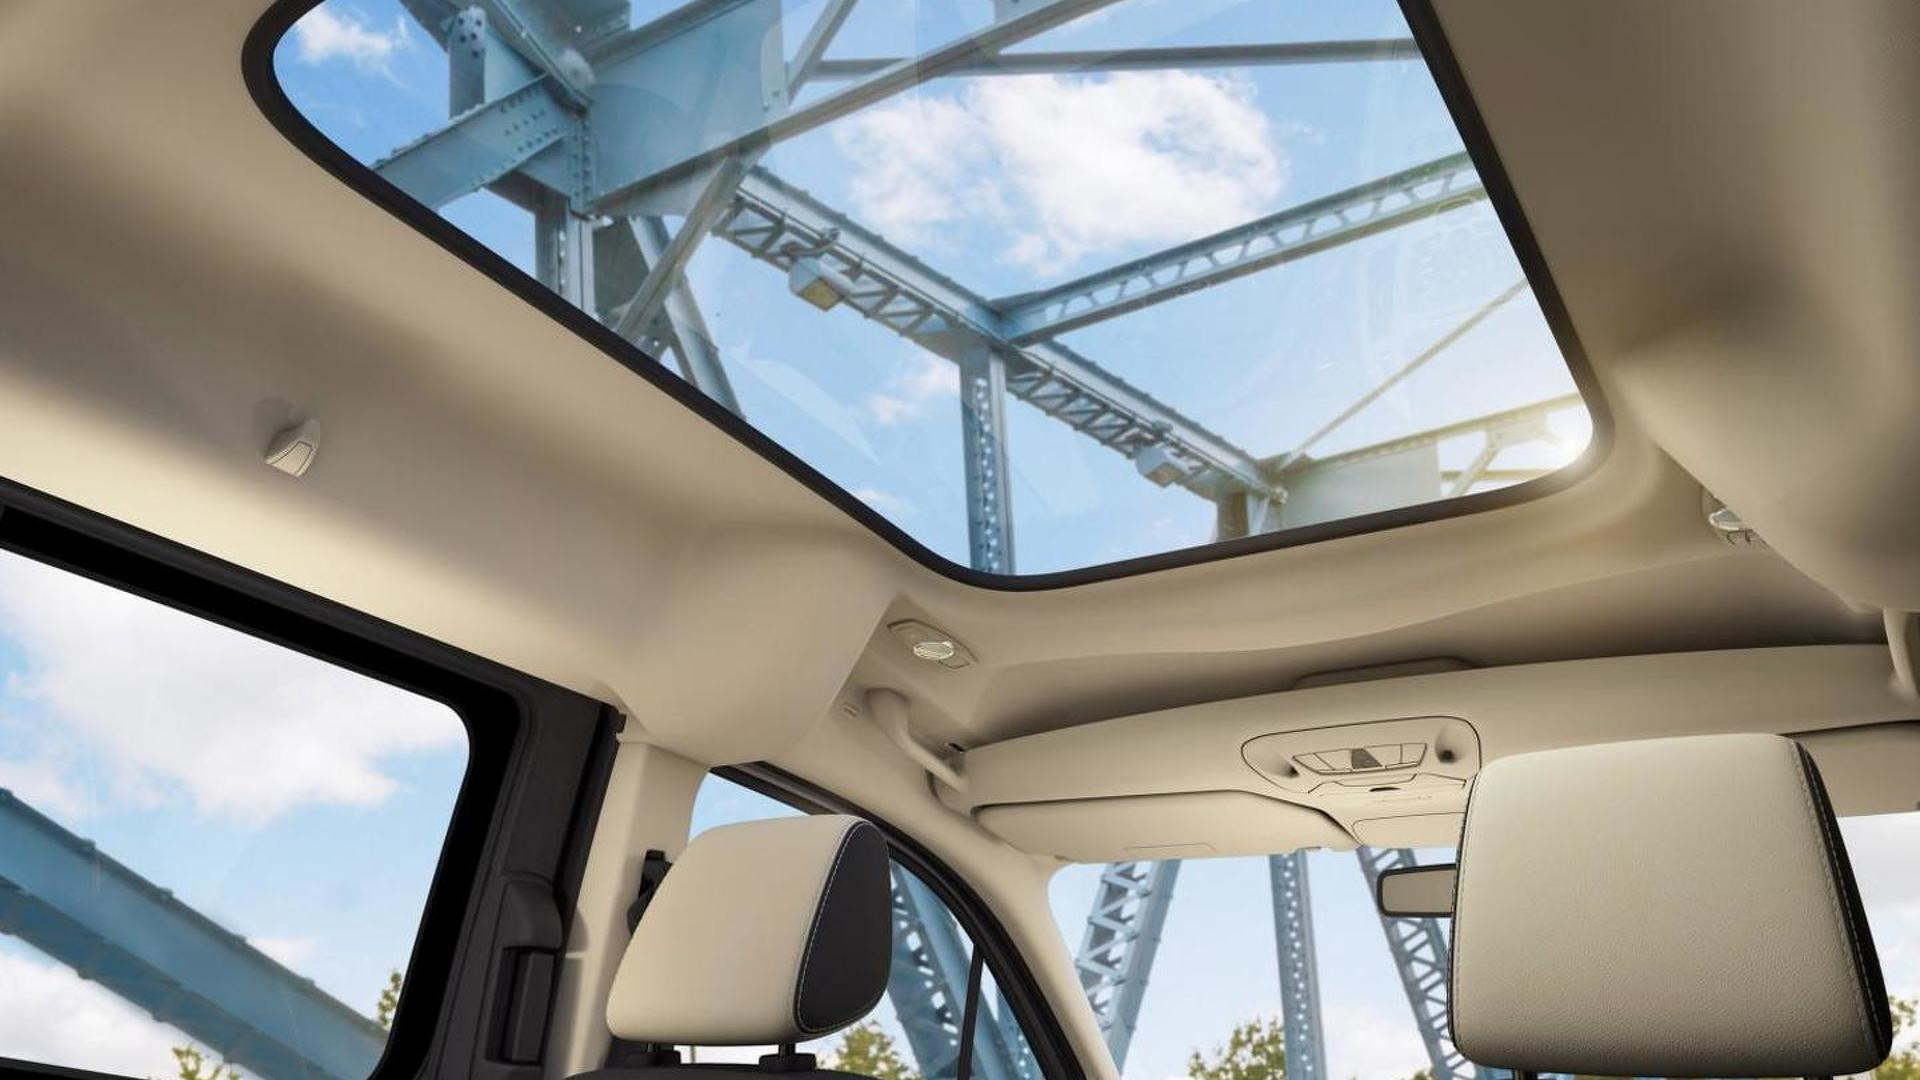 2014 Ford Transit Connect recalled for panoramic roof that